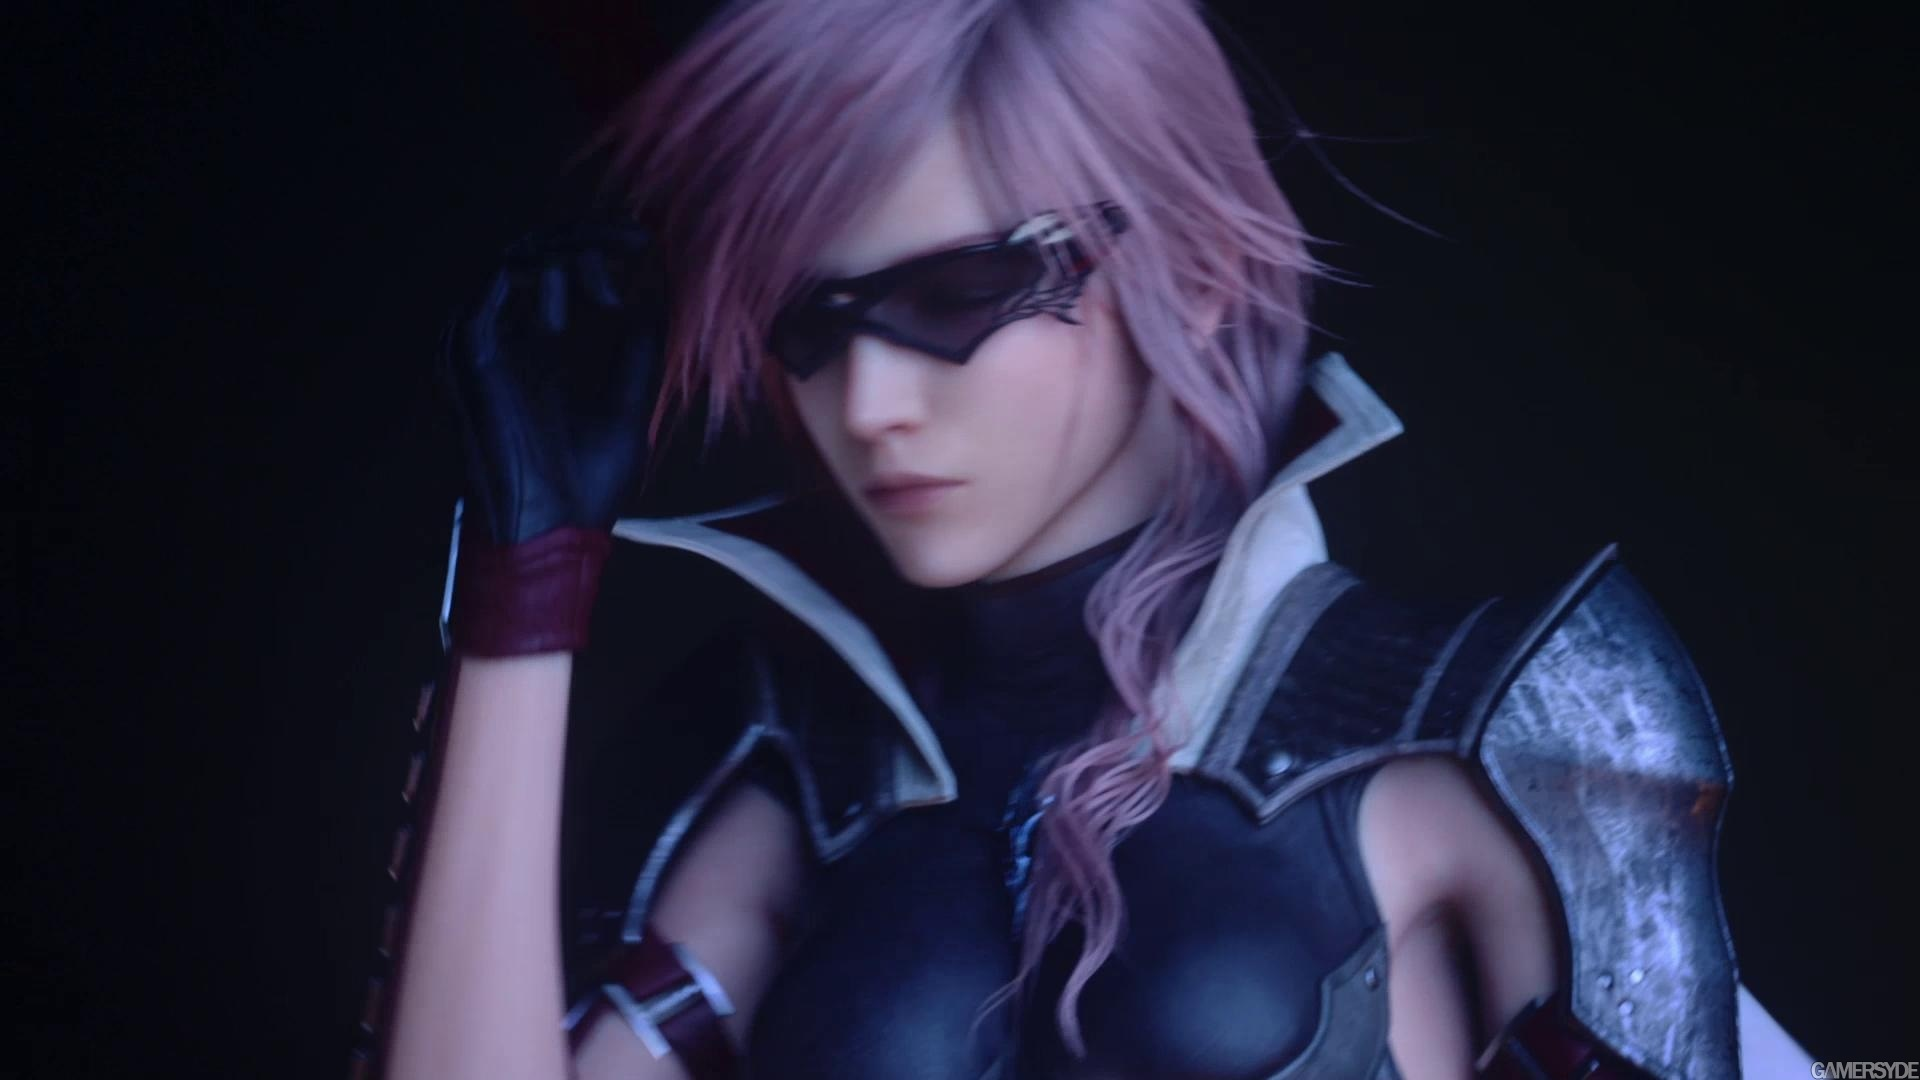 Lightning Returns Final Fantasy Xiii E3 Trailer High Quality